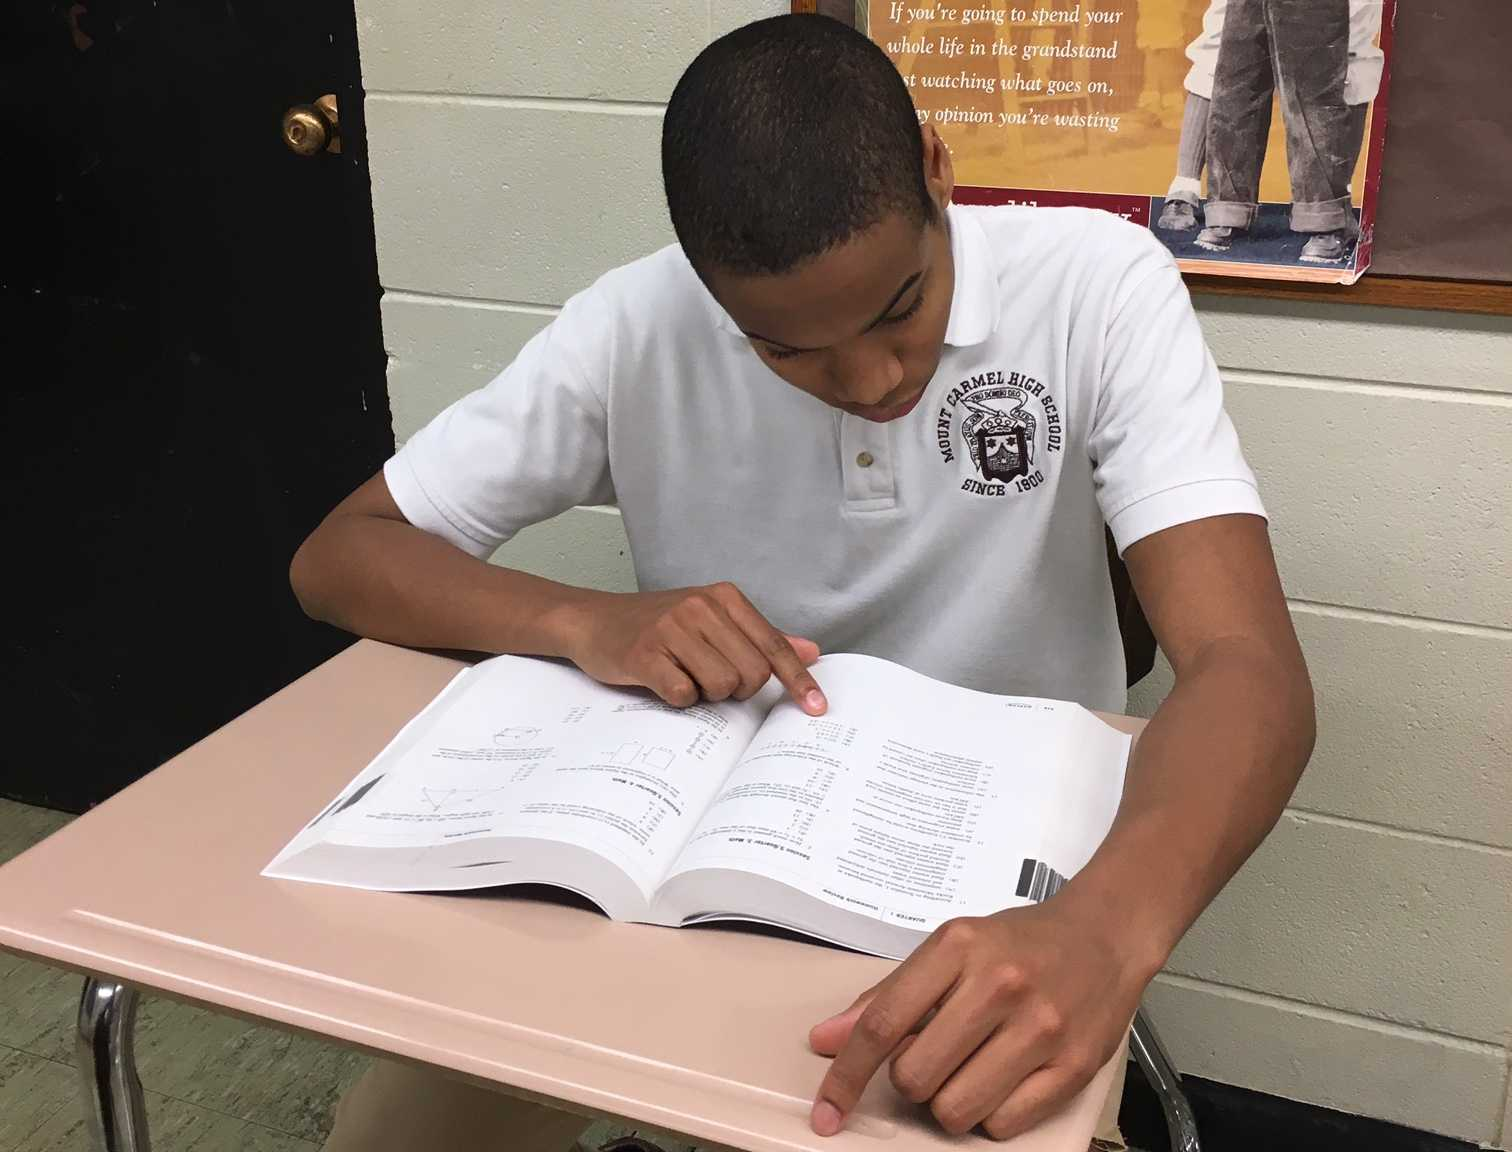 Zion Mallette '17 feels the requirement of 4 yeas of high school math is excessive.